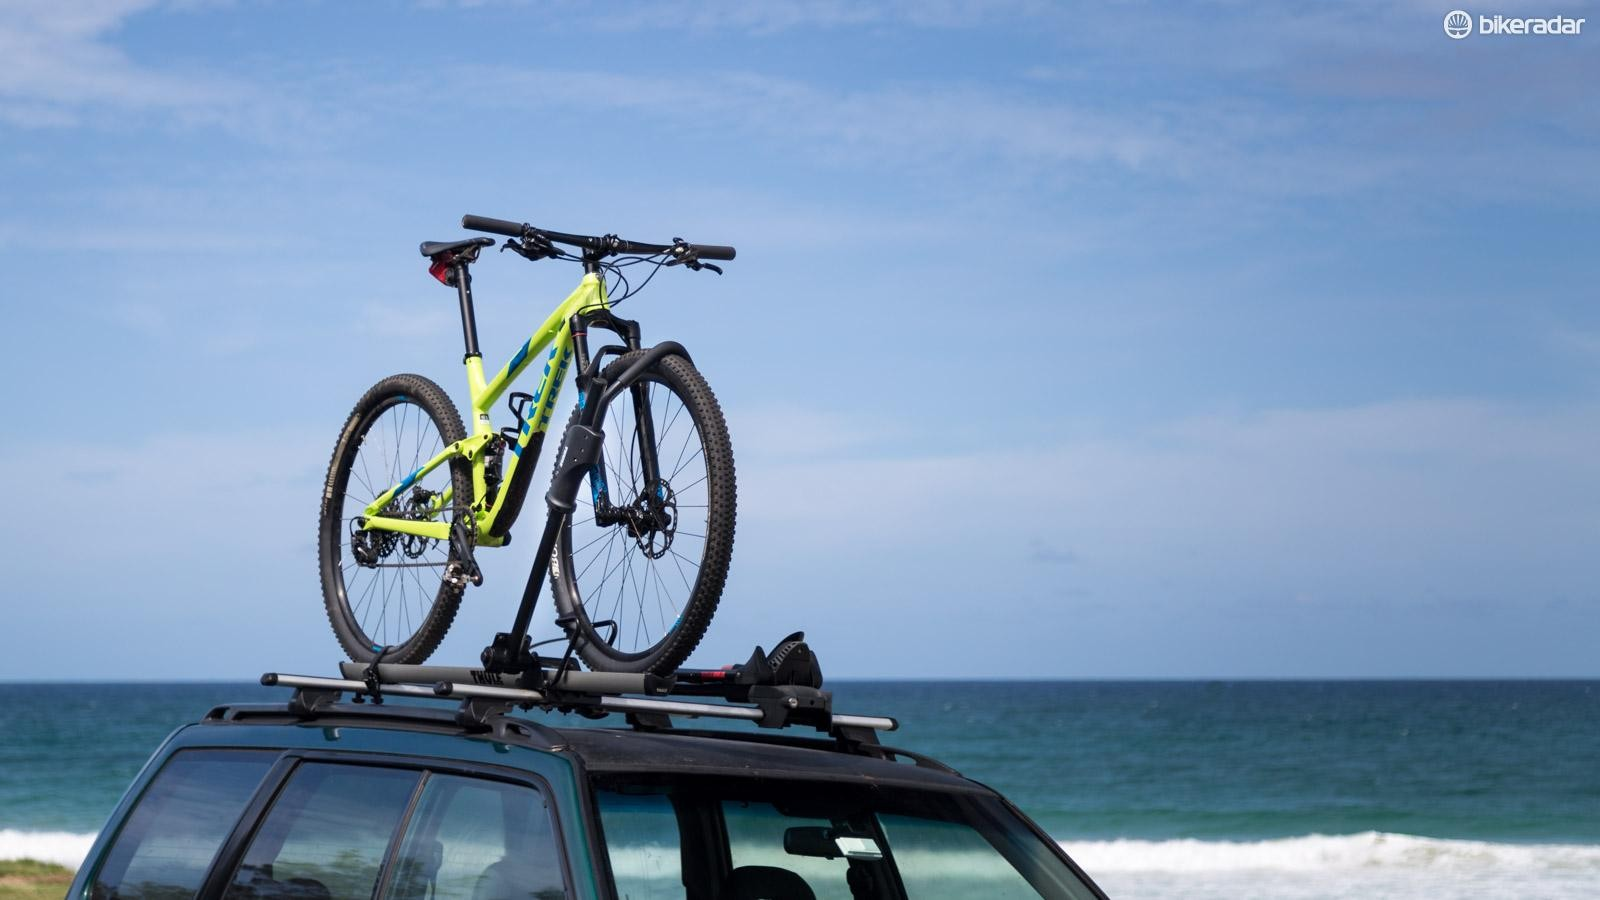 Thule's 594XT Sidearm rack is a simple front wheel grabber that doesn't require any adaptors or wheels to be removed